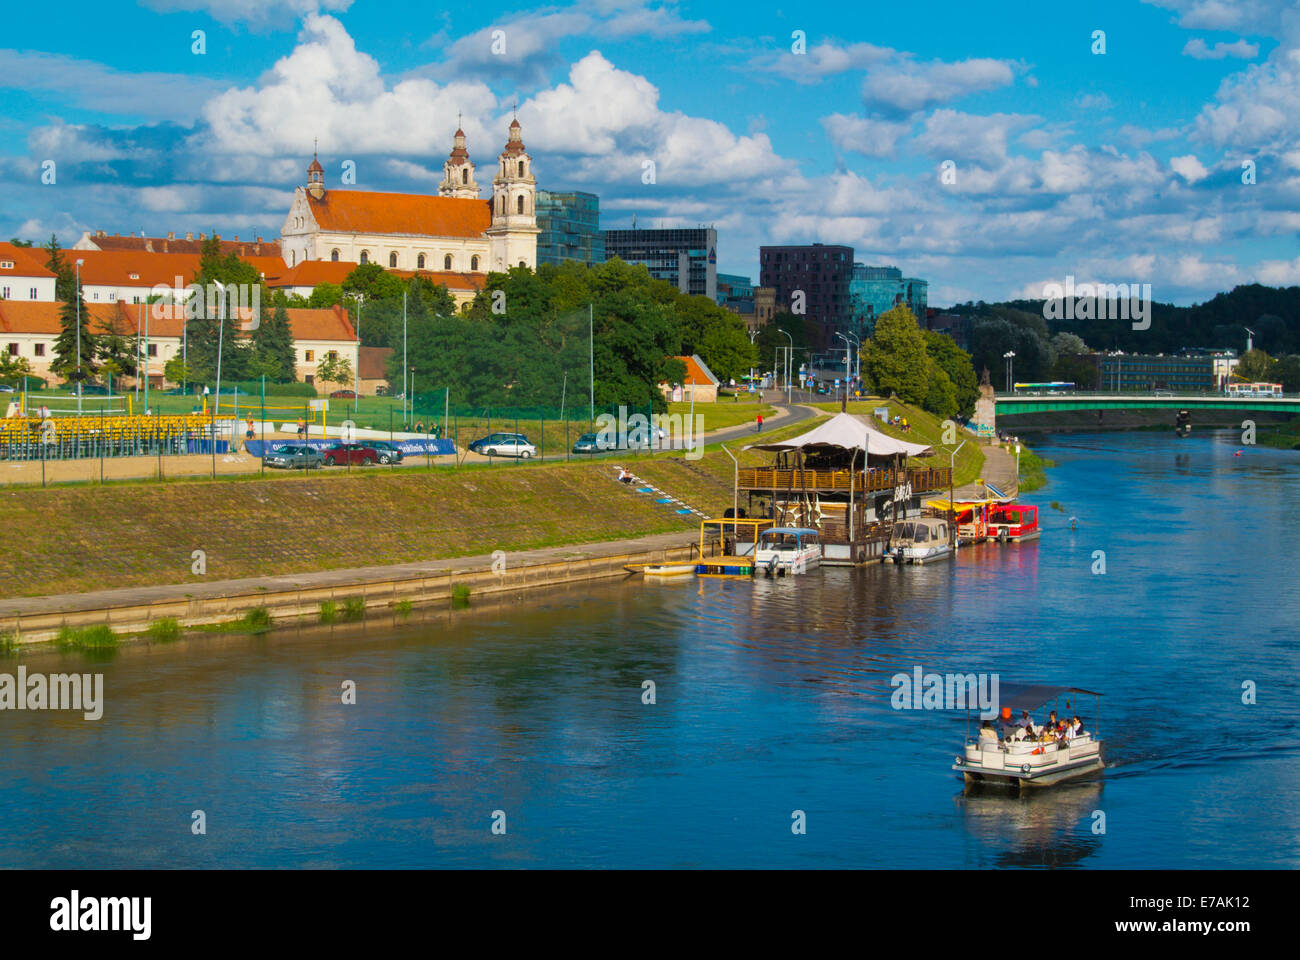 Neris riverside, with Snipiskes district in background, central Vilnius, Lithuania, Europe - Stock Image